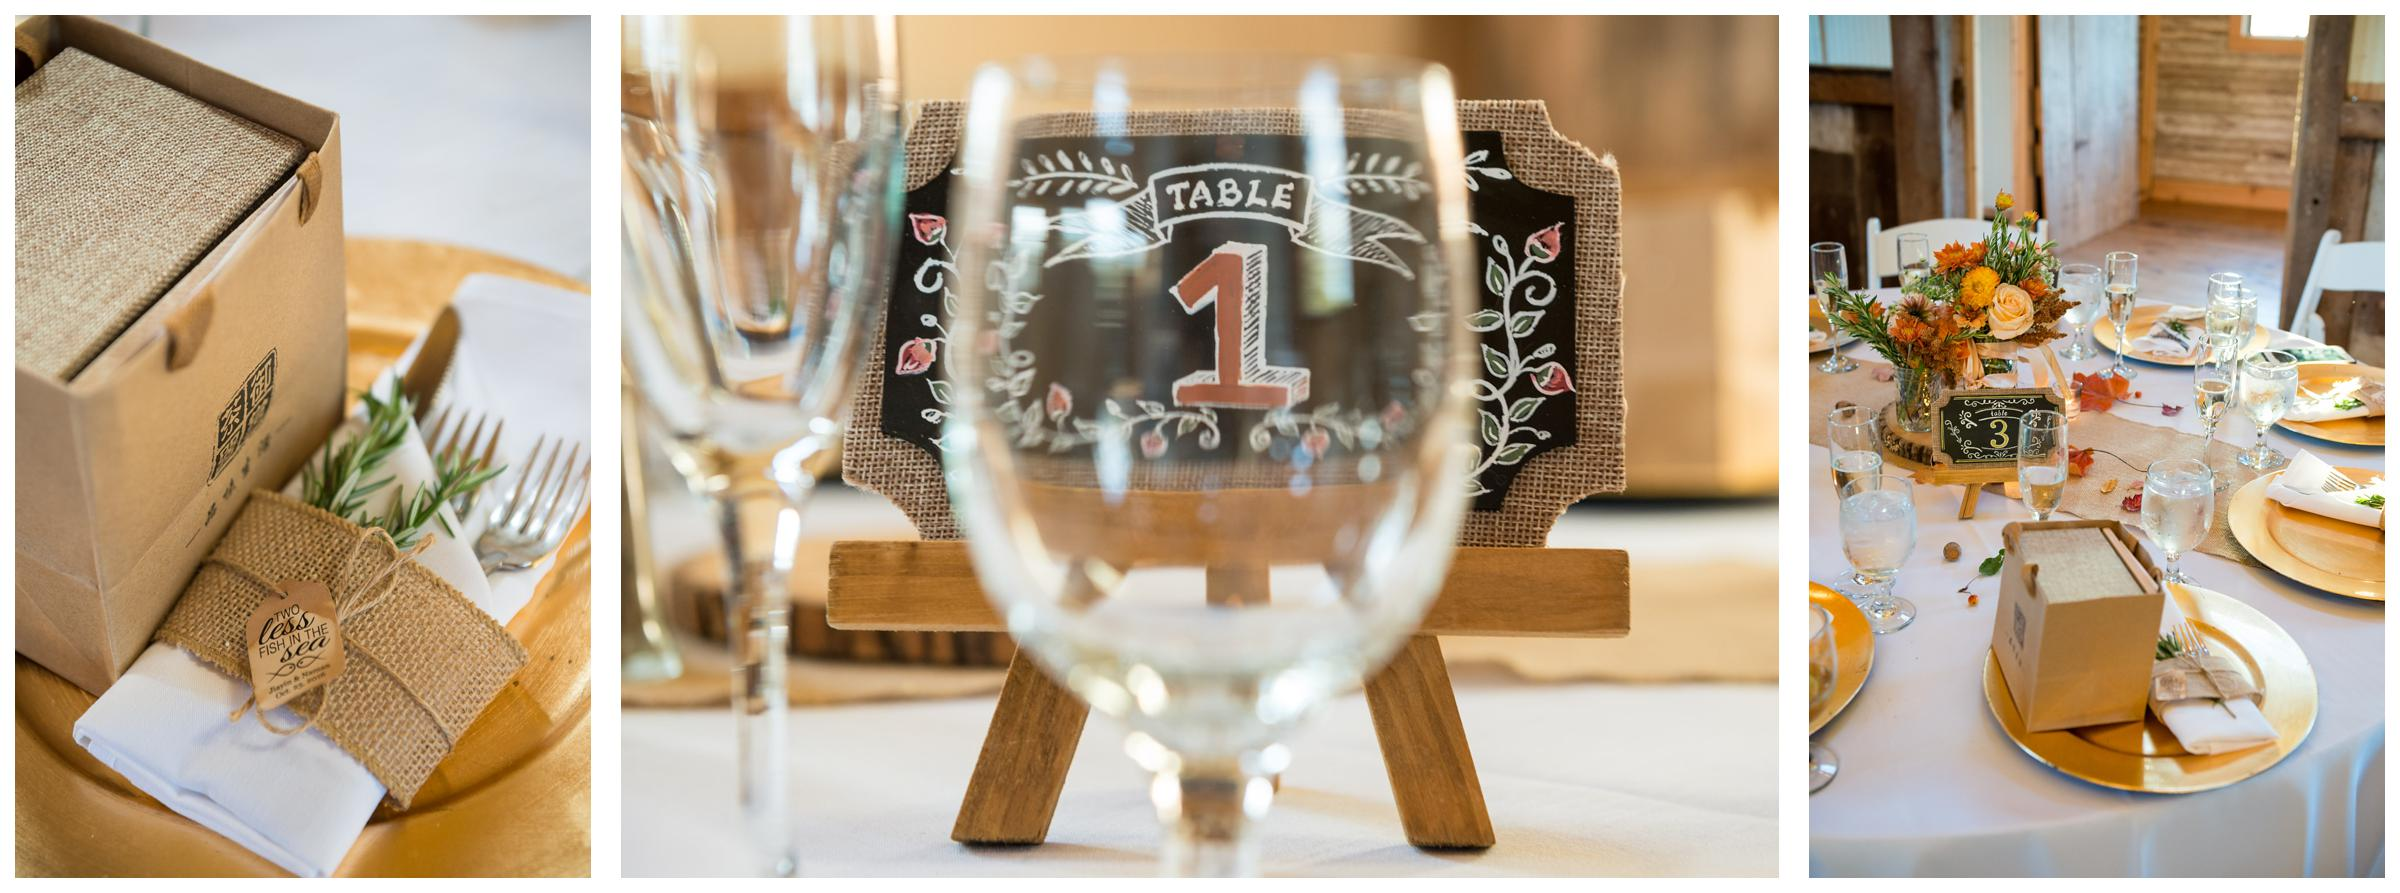 Rustic chalkboard table number signs at barn wedding.